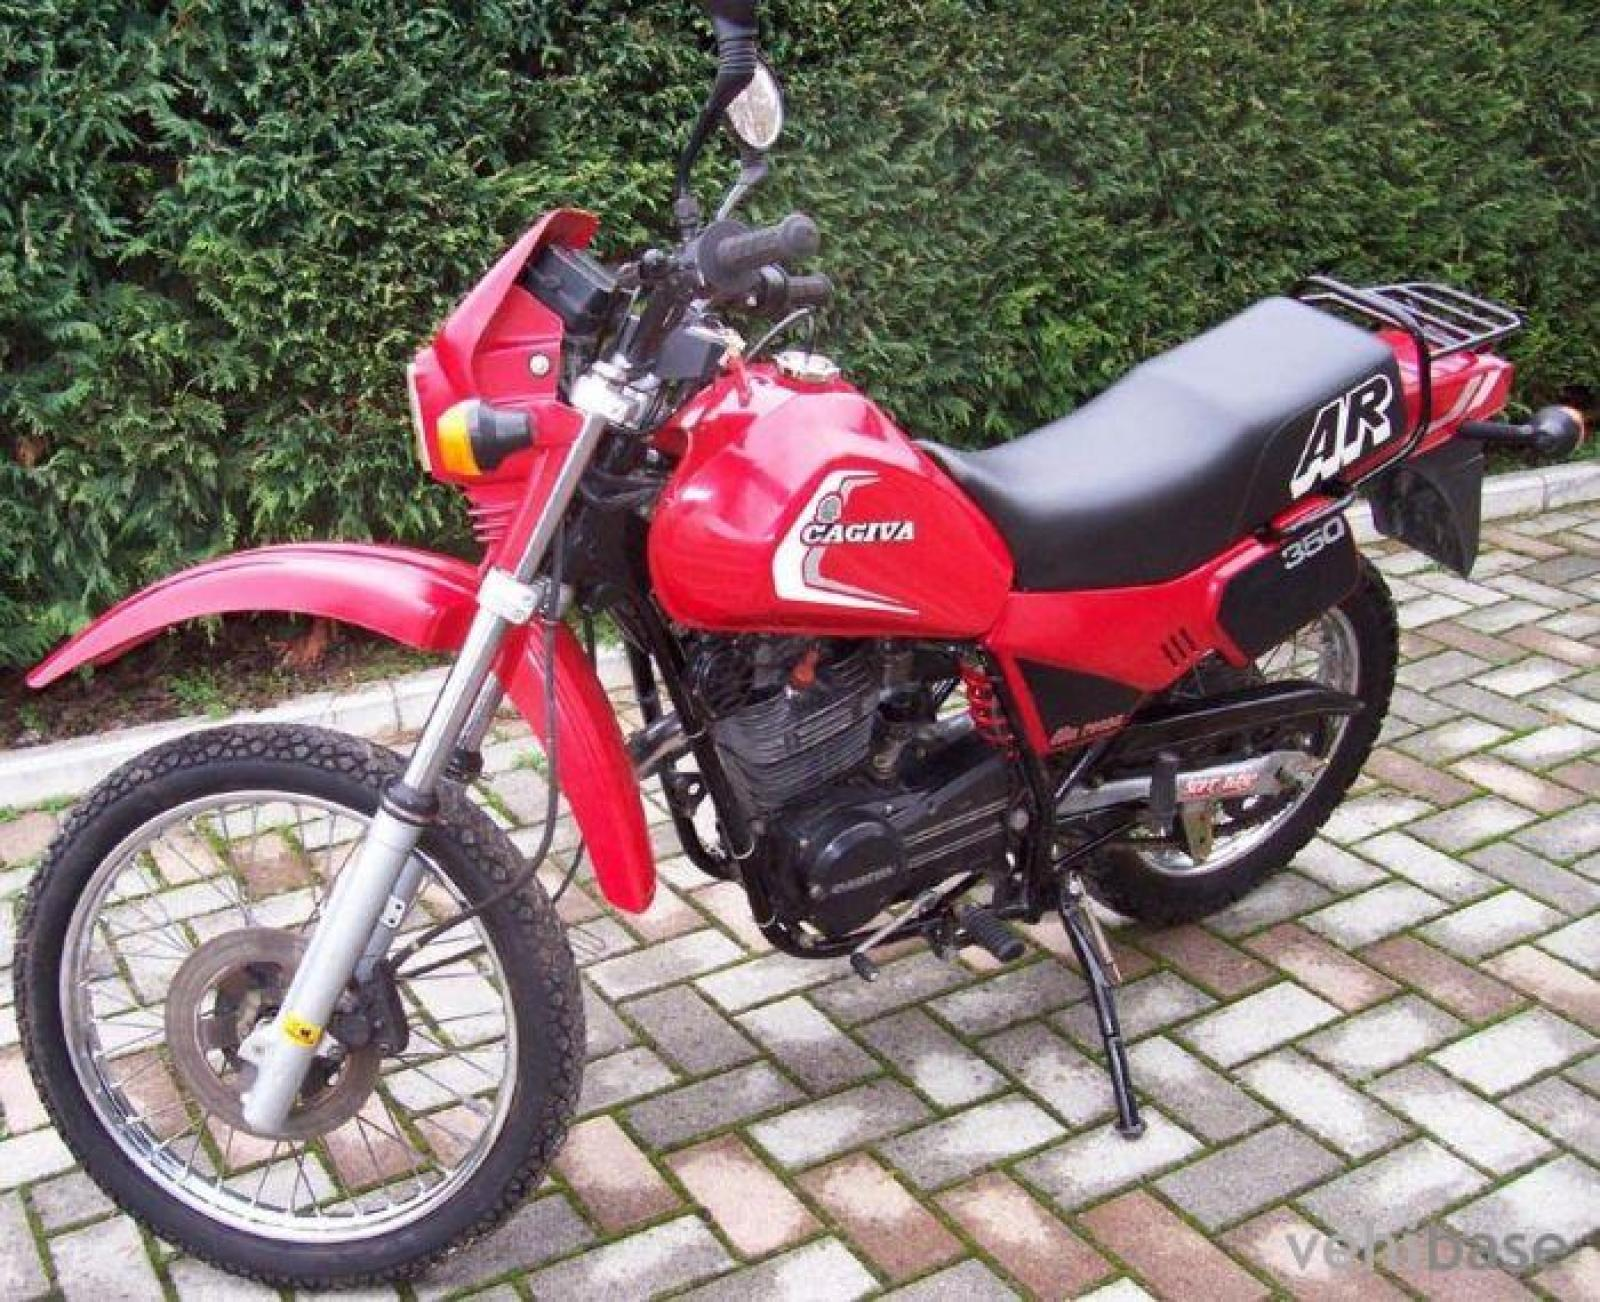 Cagiva SX 250 1983 images #67996